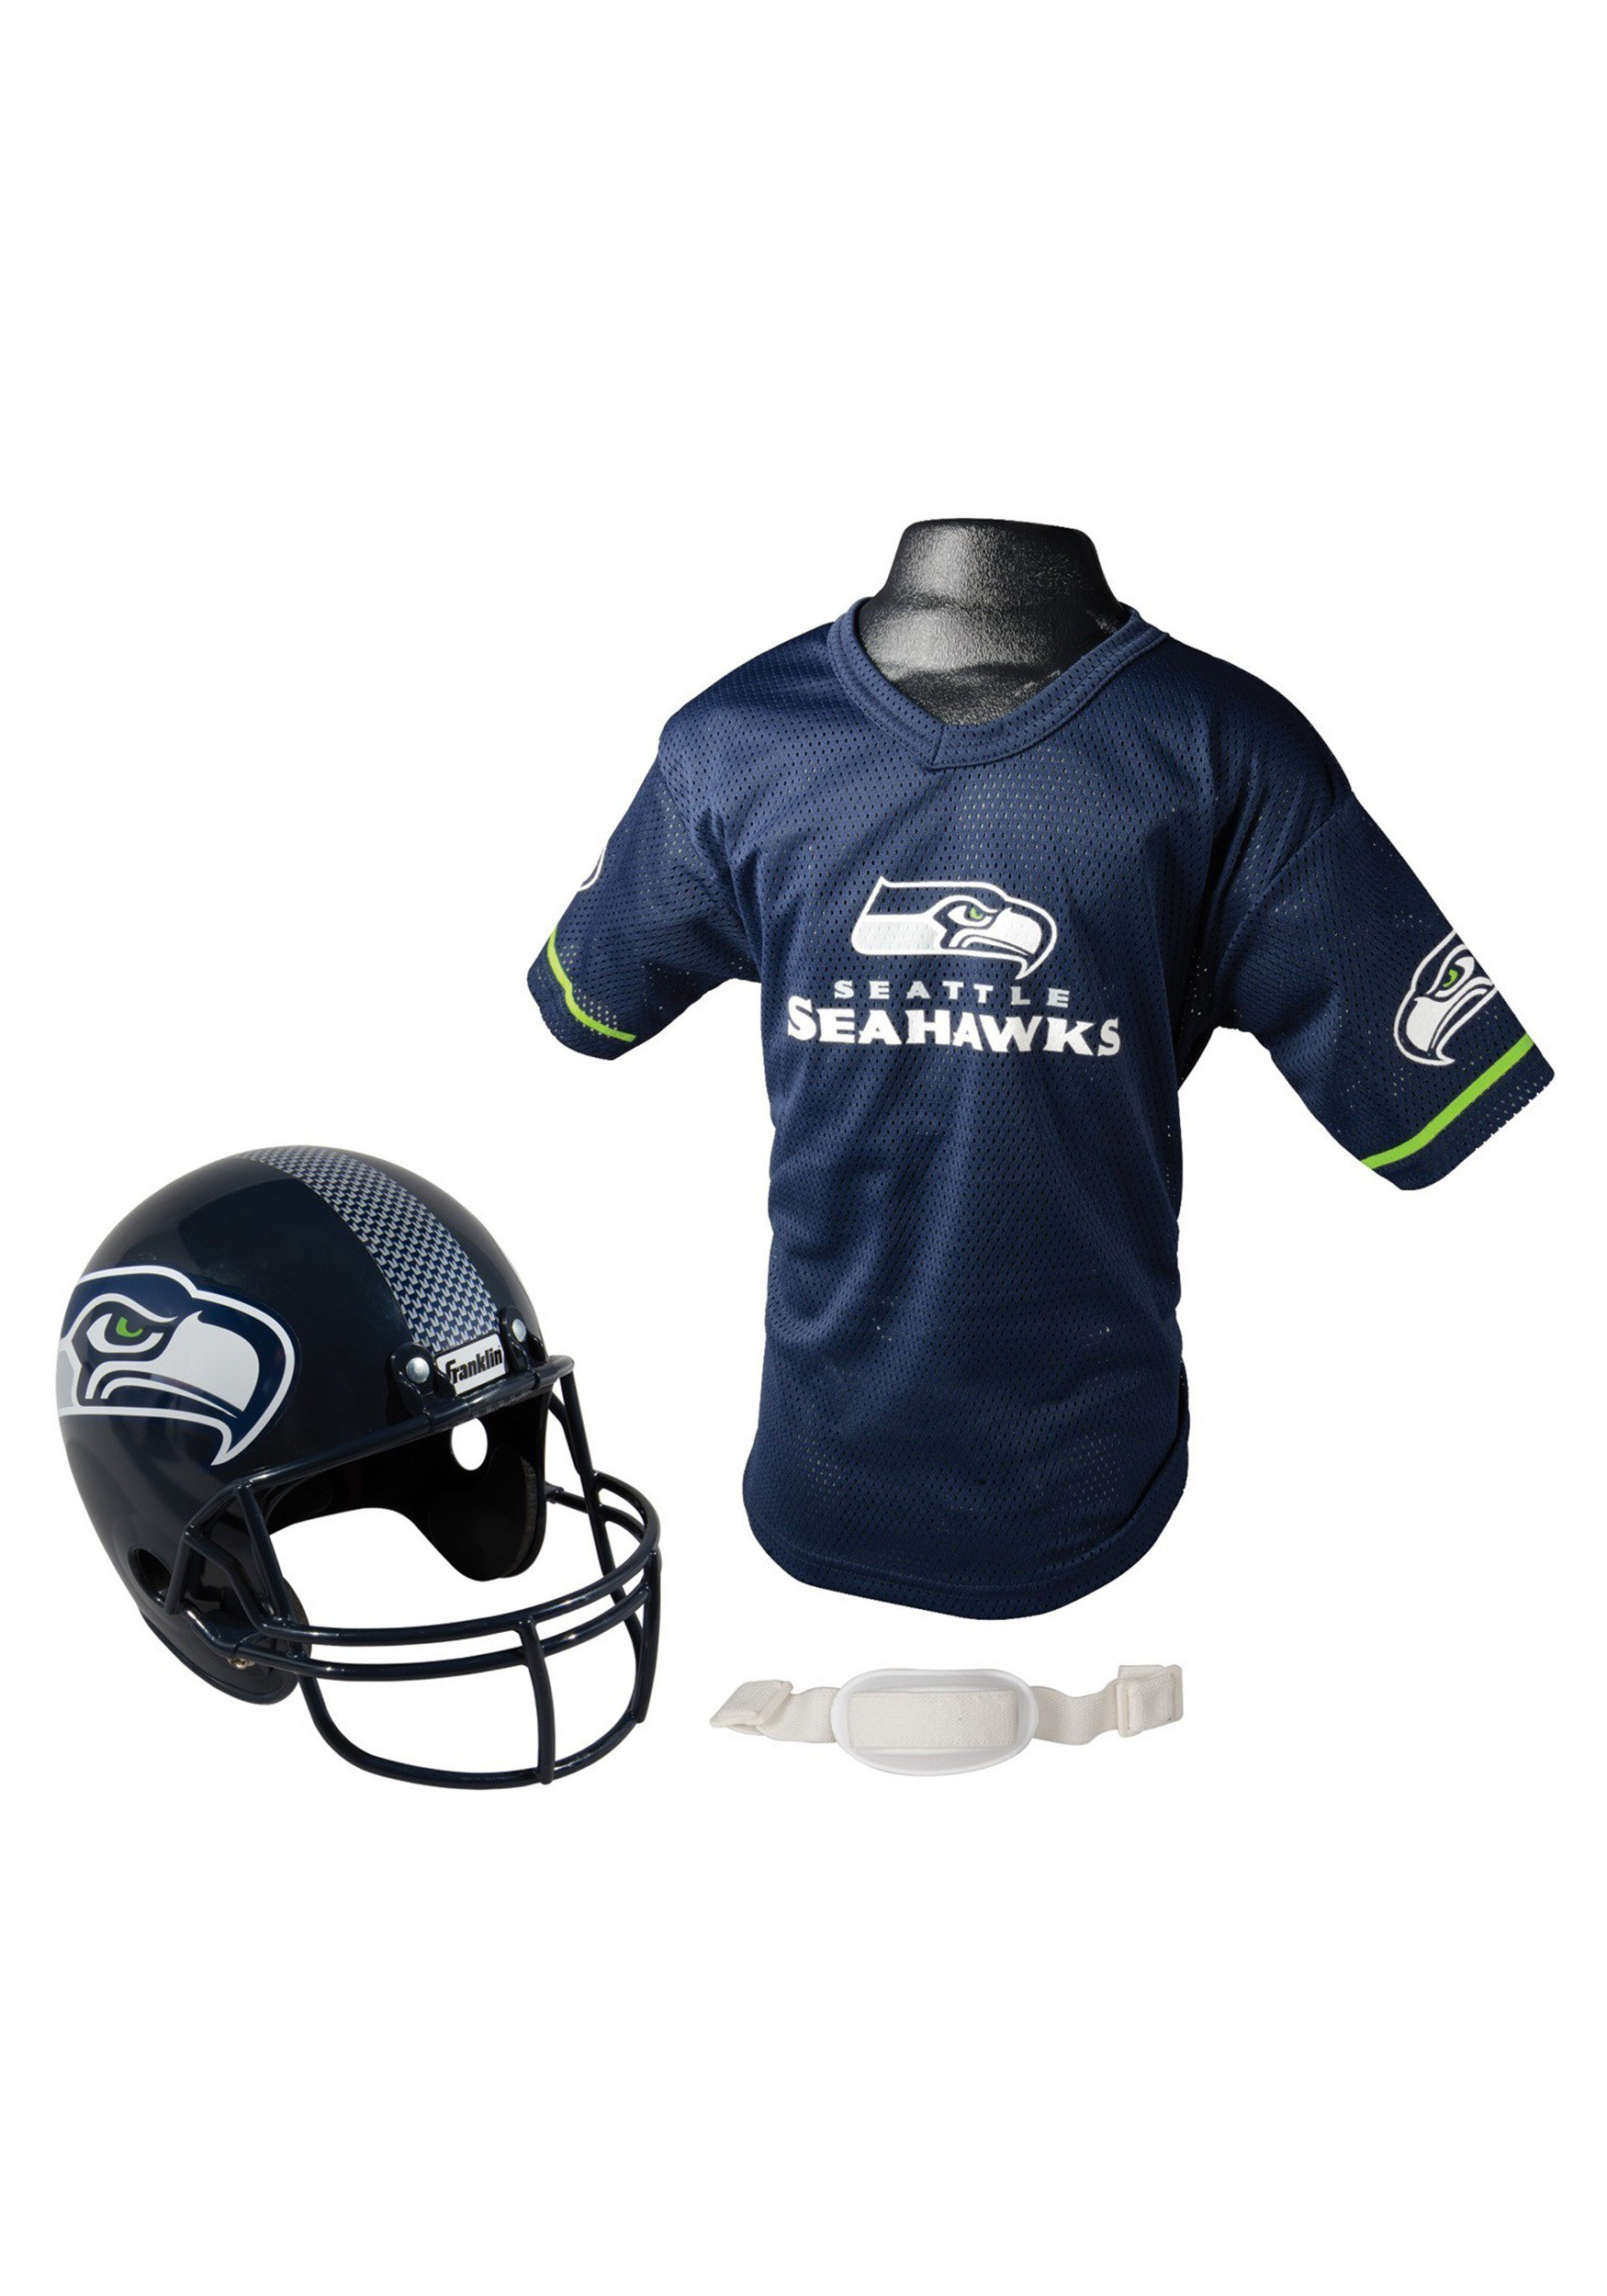 Child Nfl Seattle Seahawks Helmet And Jersey Costume Set